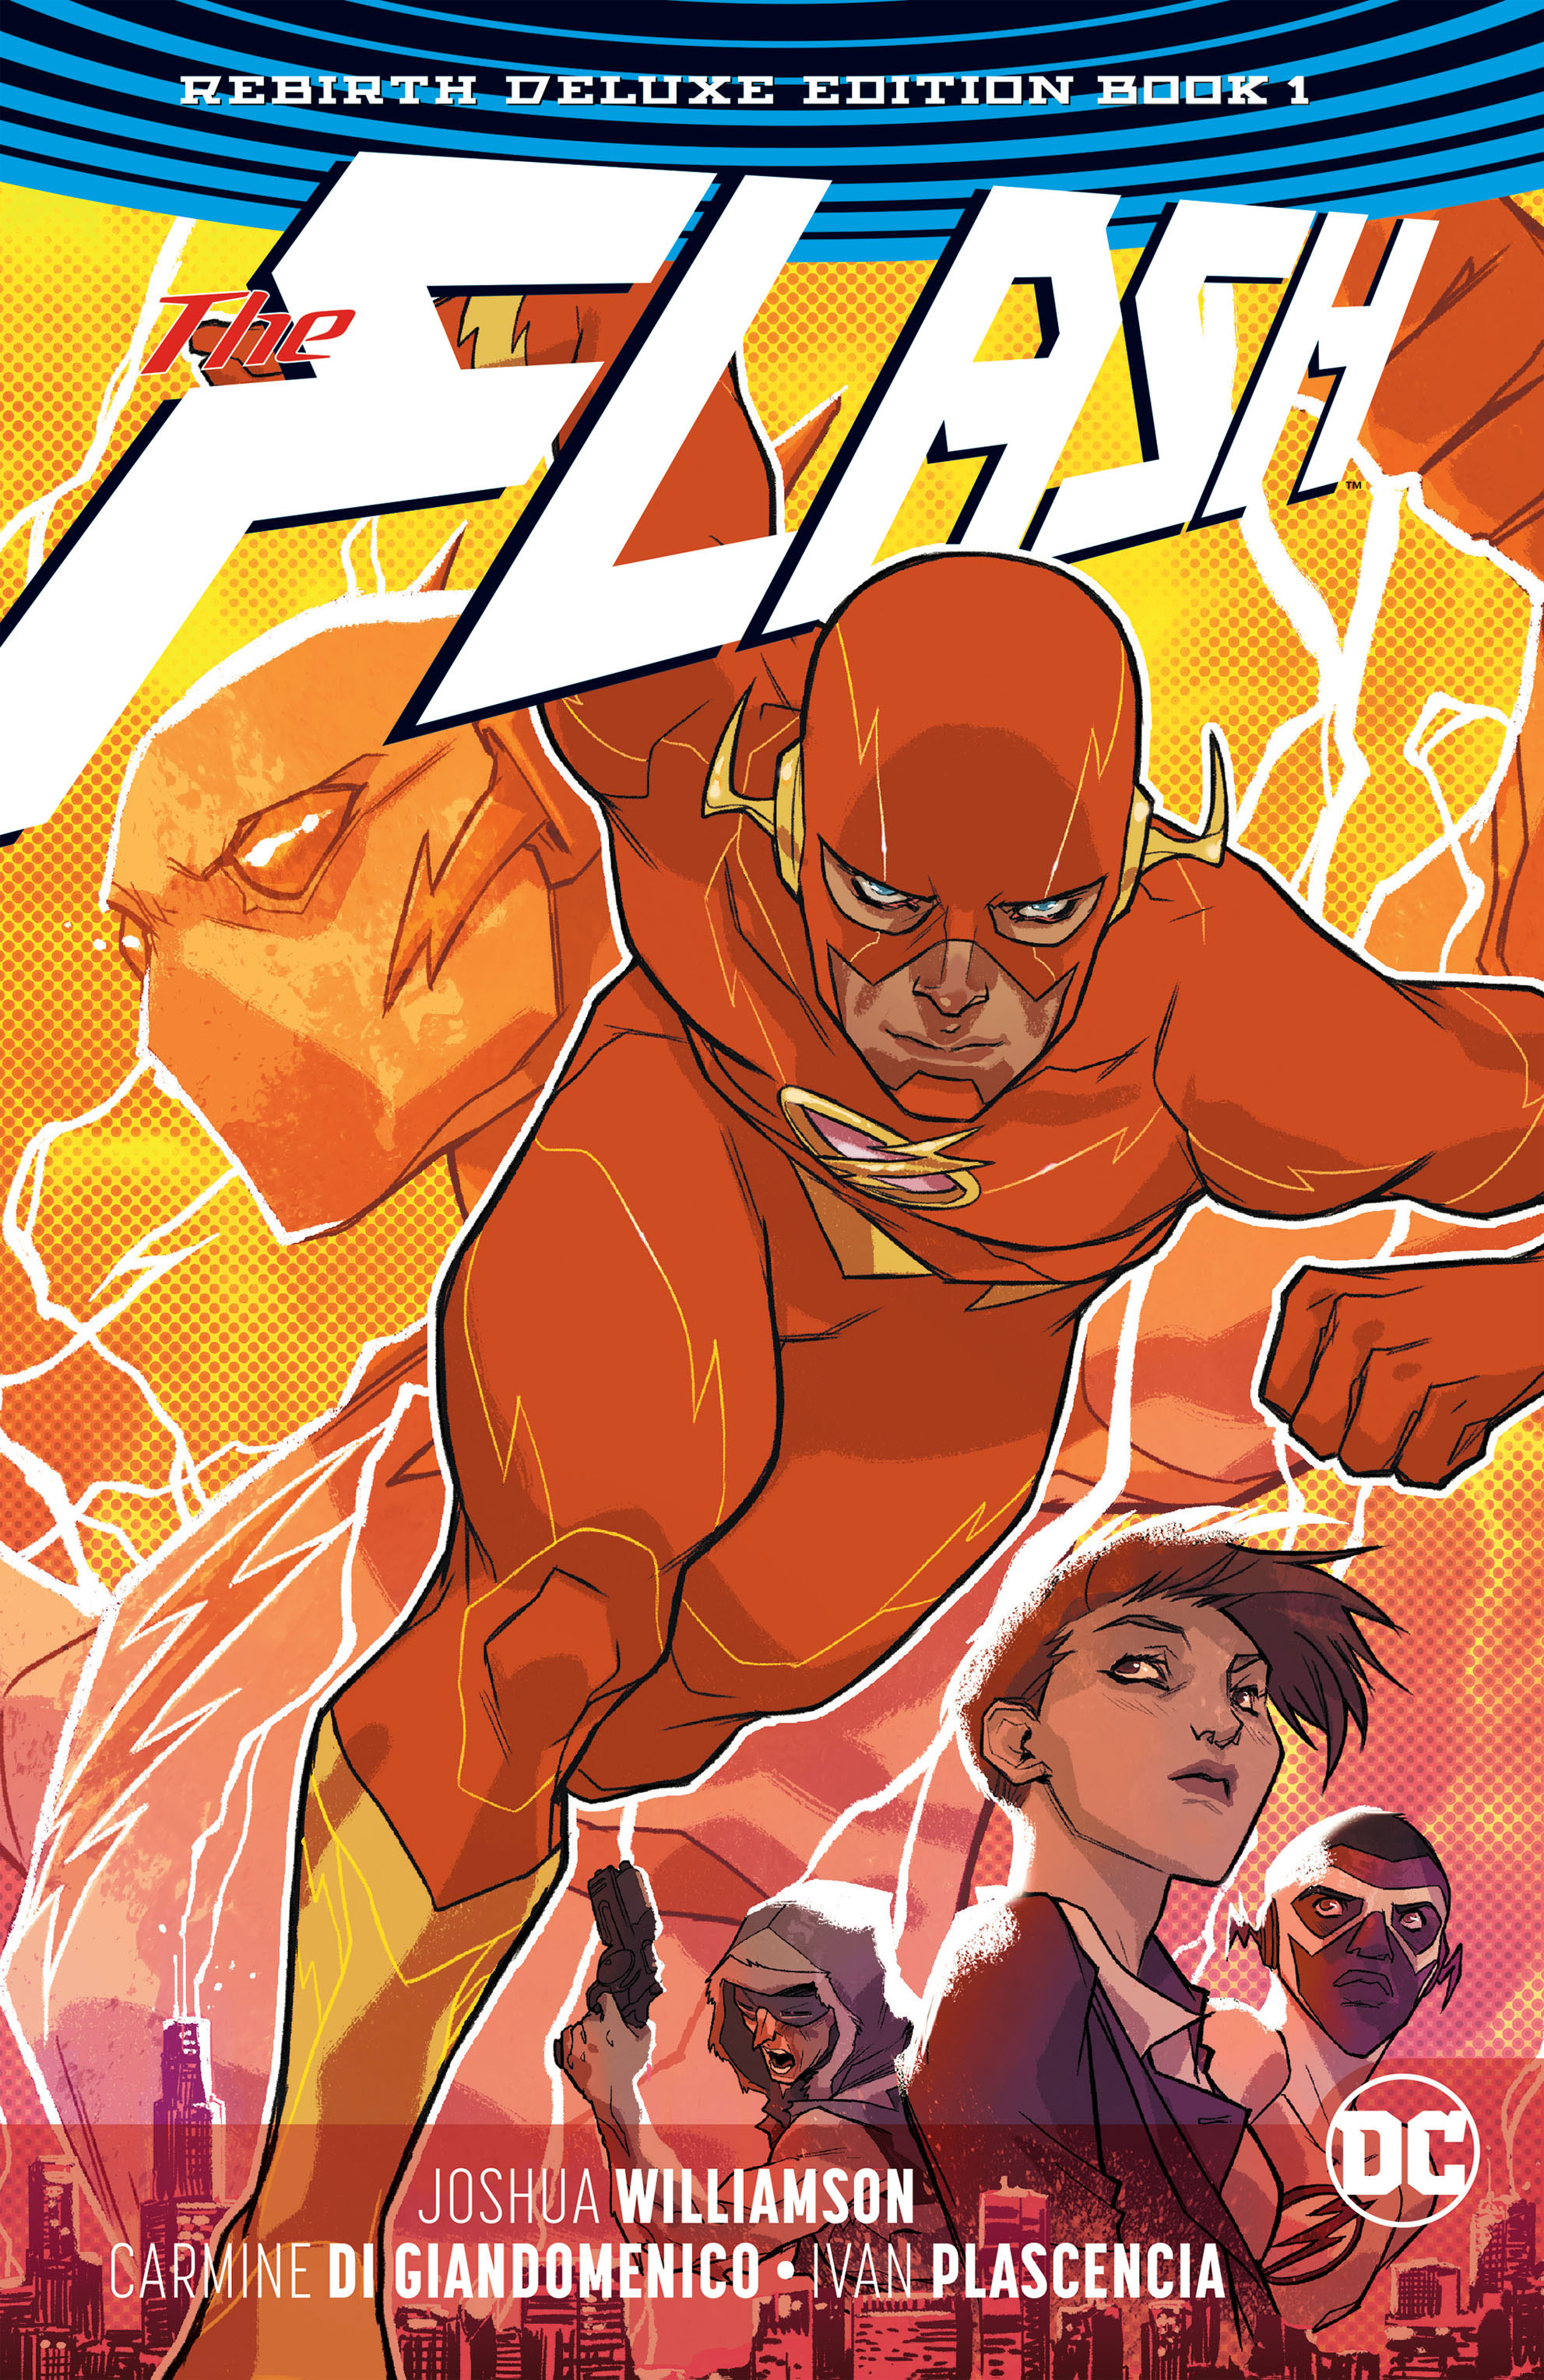 The Flash: Rebirth Deluxe Edition Book 1 (Collected)